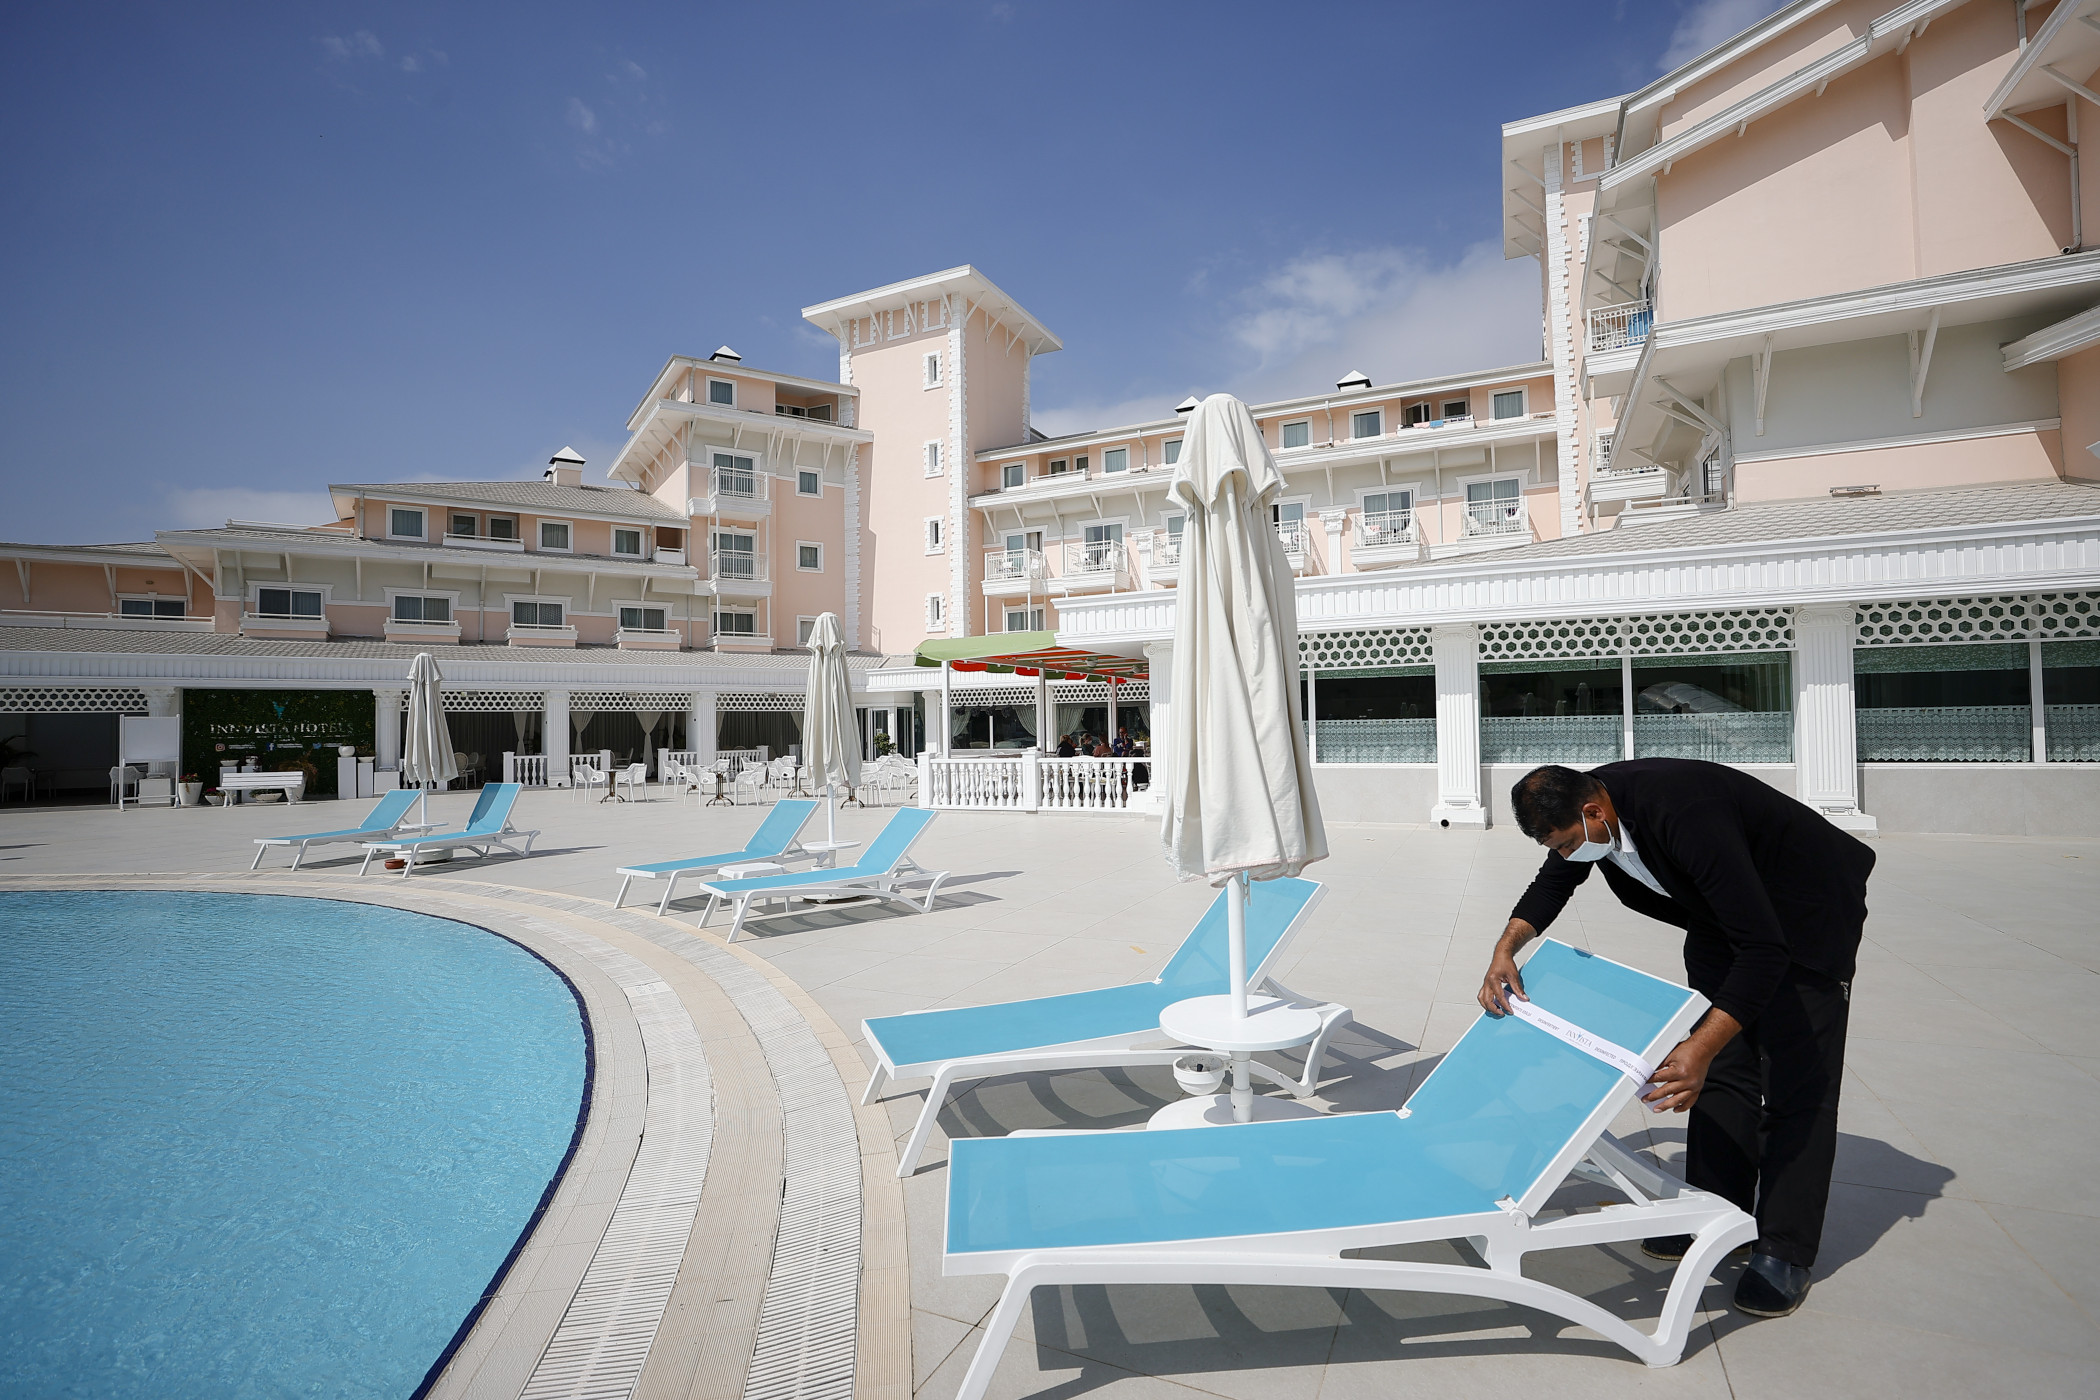 Hotel occupancy dropped last week even though the number of travelers increased heading into the July Fourth weekend. (Getty Images)